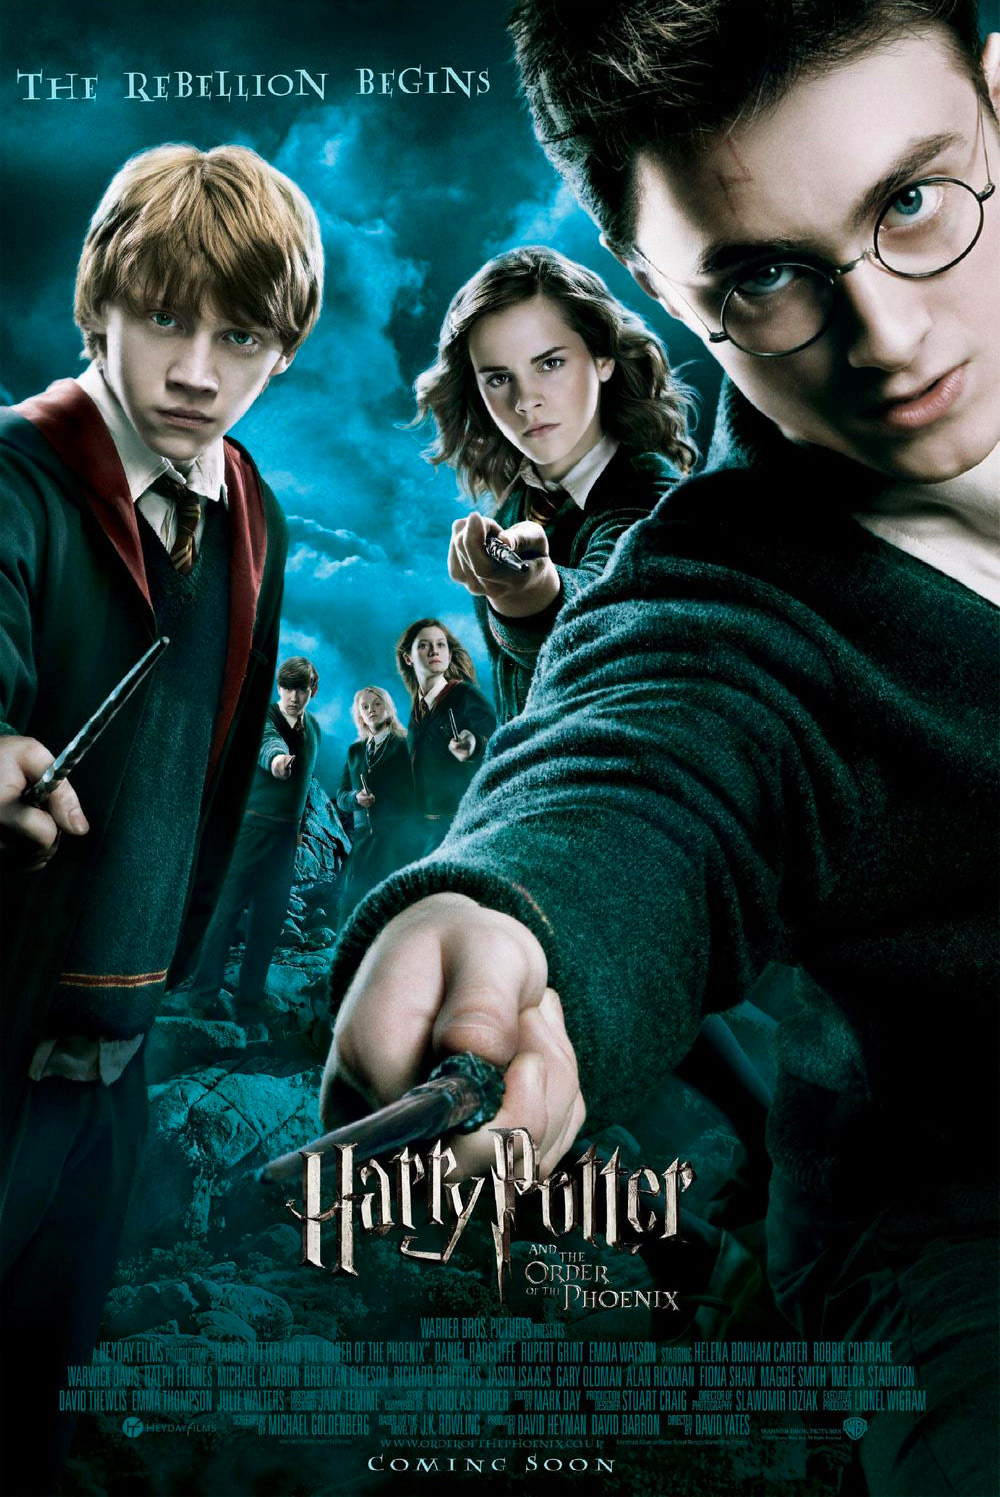 'Order of the Phoenix' theatrical poster #3